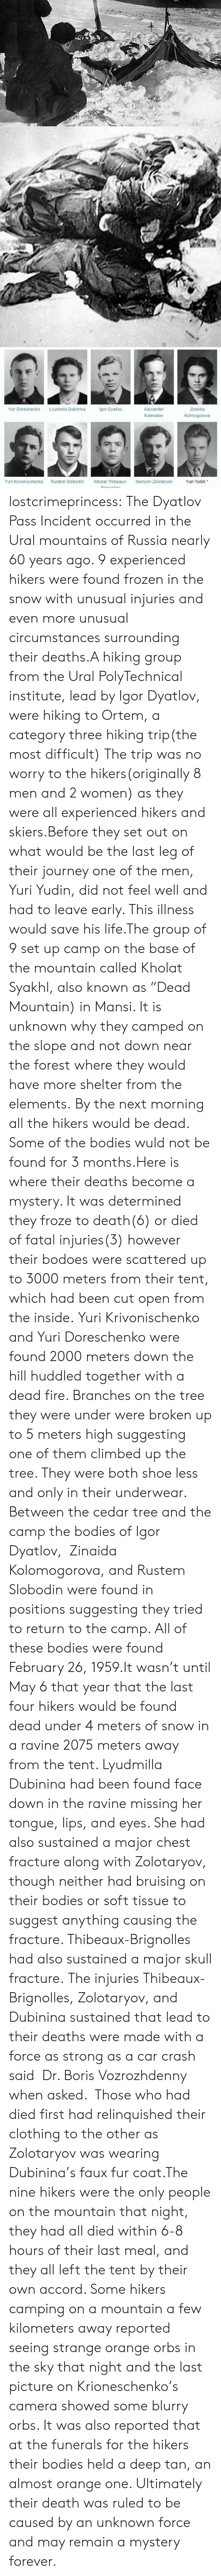 """Bodies , Fire, and Frozen: Yuri Doroshenko  Lyudmila Dubinina  gor Dyatlov  Alexander  Zinaida  Kolmogorova  Kolevatov  Yuri Krivonischenko  Rustem Slobodin  Nikolai Thibeaux-  Semyon Zolotaryov  Yuri Yudin* lostcrimeprincess:  The Dyatlov Pass Incident occurred in the Ural mountains of Russia nearly 60 years ago. 9 experienced hikers were found frozen in the snow with unusual injuries and even more unusual circumstances surrounding their deaths.A hiking group from the Ural PolyTechnical institute, lead by Igor Dyatlov, were hiking to Ortem, a category three hiking trip(the most difficult) The trip was no worry to the hikers(originally 8 men and 2 women) as they were all experienced hikers and skiers.Before they set out on what would be the last leg of their journey one of the men, Yuri Yudin, did not feel well and had to leave early. This illness would save his life.The group of 9 set up camp on the base of the mountain called Kholat Syakhl, also known as""""Dead Mountain) in Mansi. It is unknown why they camped on the slope and not down near the forest where they would have more shelter from the elements.By the next morning all the hikers would be dead. Some of the bodies wuld not be found for 3 months.Here is where their deaths become a mystery. It was determined they froze to death(6) or died of fatal injuries(3) however their bodoes were scattered up to 3000 meters from their tent, which had been cut open from the inside.Yuri Krivonischenko and Yuri Doreschenko were found 2000 meters down the hill huddled together with a dead fire. Branches on the tree they were under were broken up to 5 meters high suggesting one of them climbed up the tree. They were both shoe less and only in their underwear. Between the cedar tree and the camp the bodies of Igor Dyatlov, Zinaida Kolomogorova, and Rustem Slobodin were found in positions suggesting they tried to return to the camp. All of these bodies were found February 26, 1959.It wasn't until May 6 that year that the last fou"""